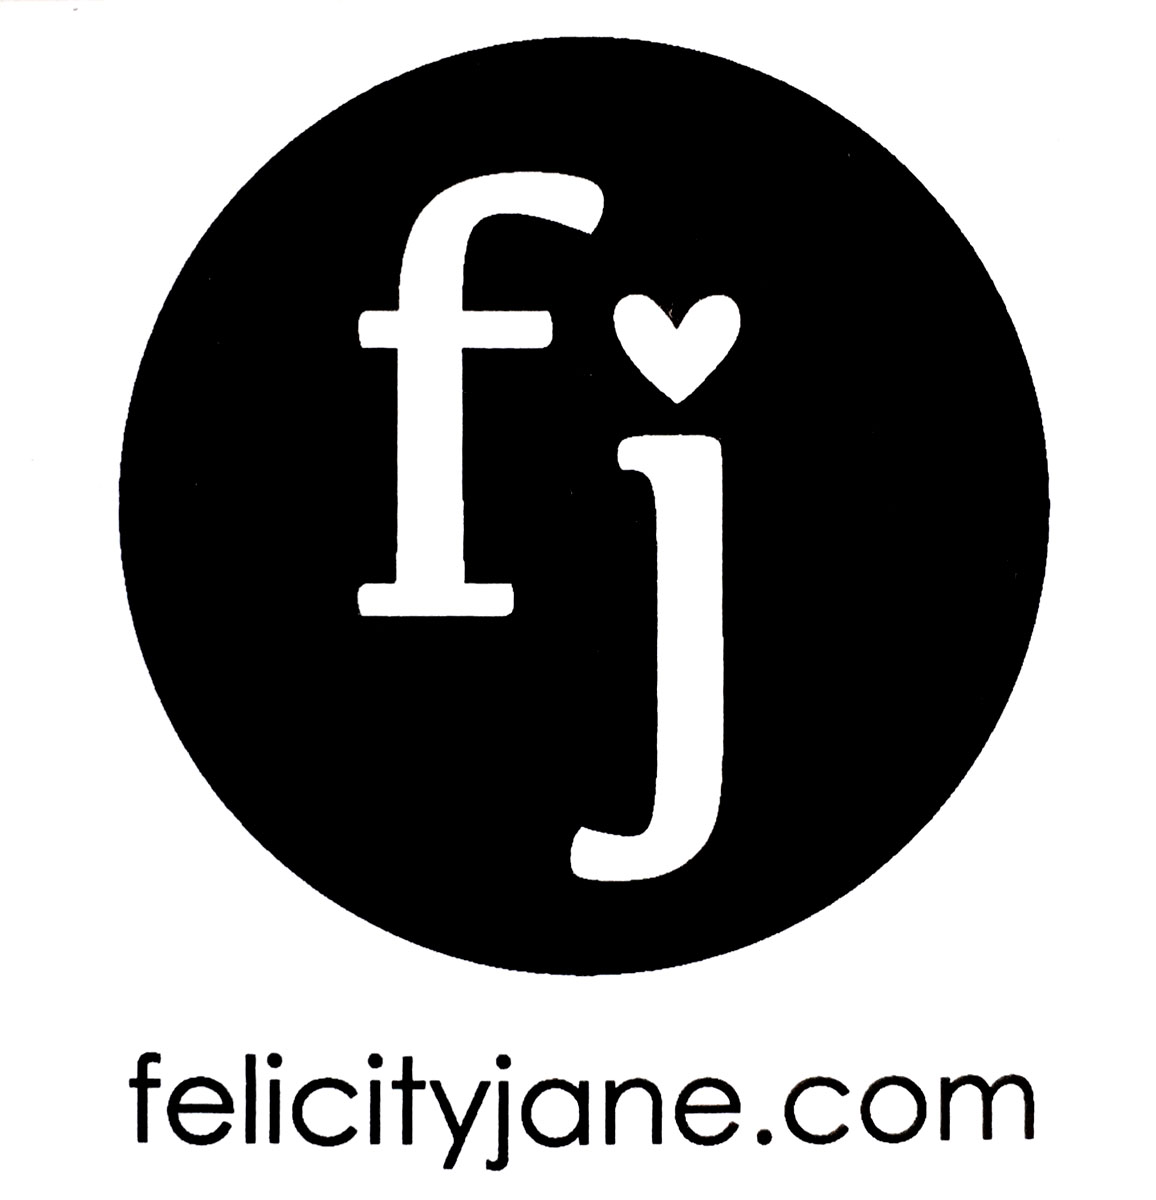 I create for Felicity Jane